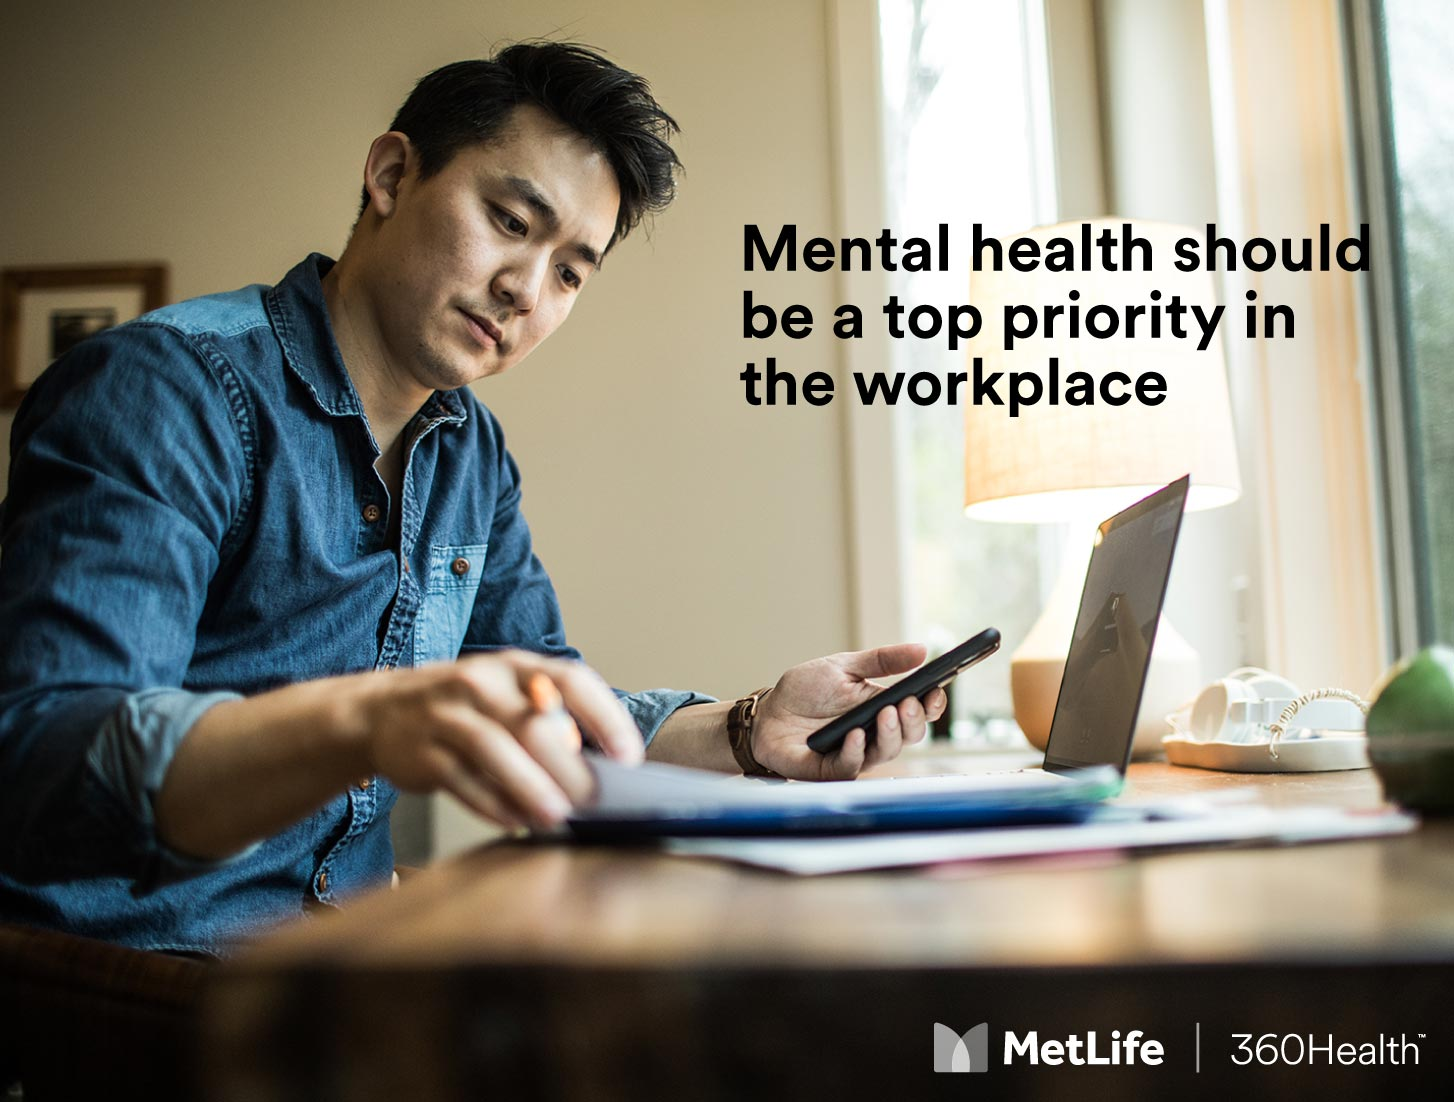 Mental health should be a top priority in the workplace